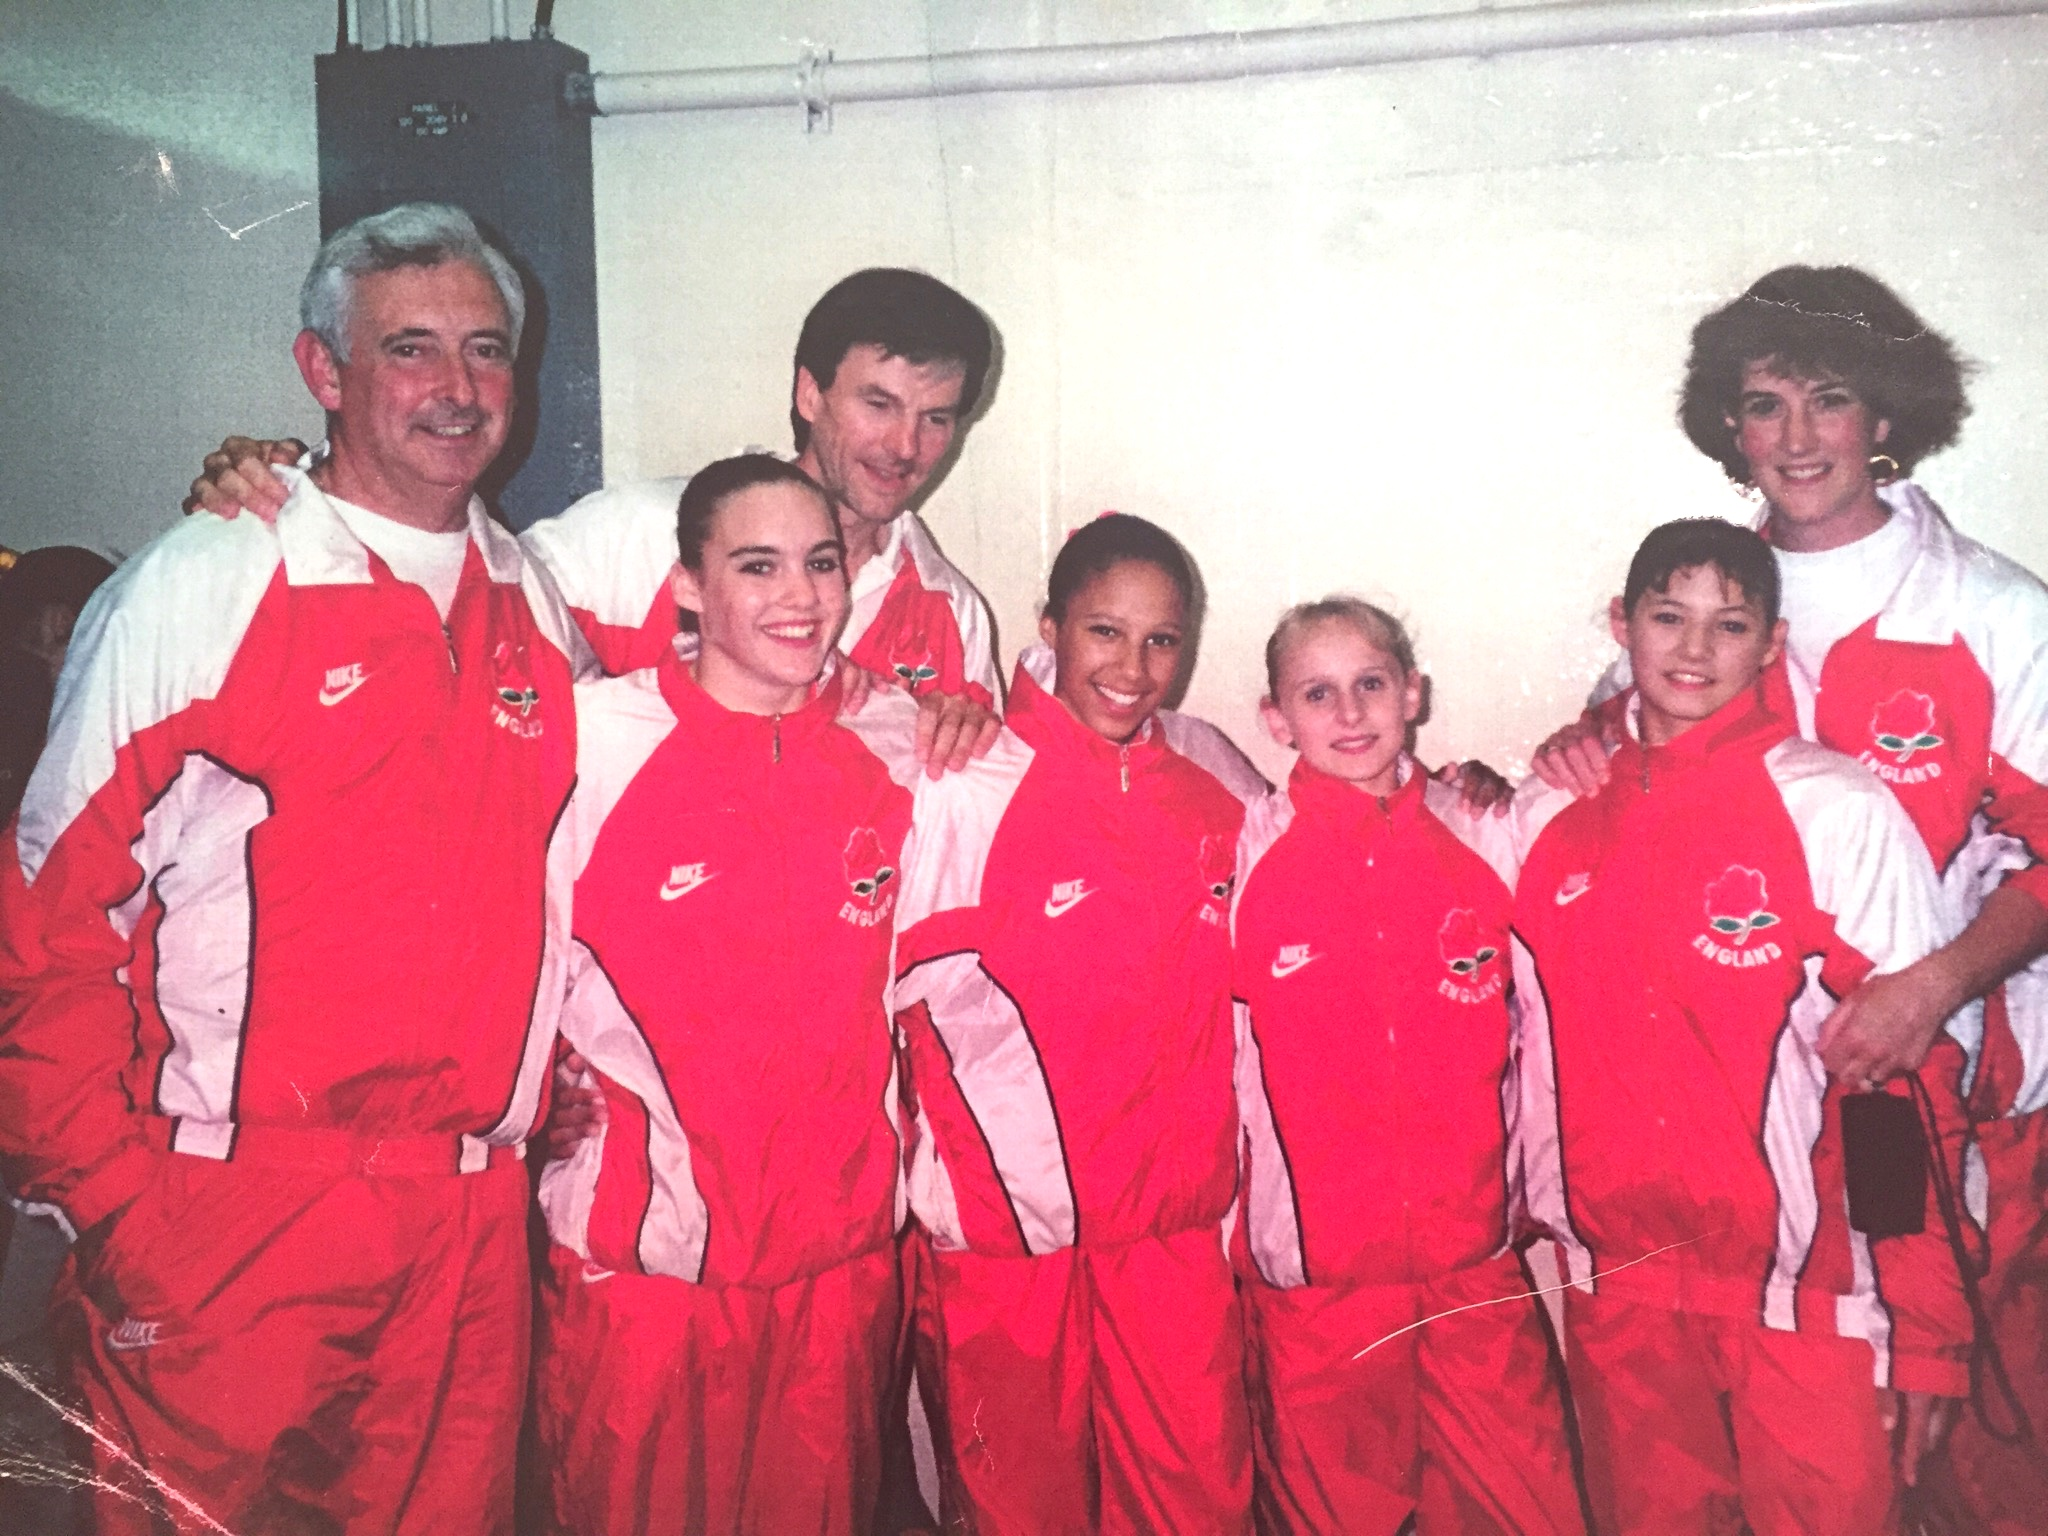 Zita Lusack with the England Gymnastics Team